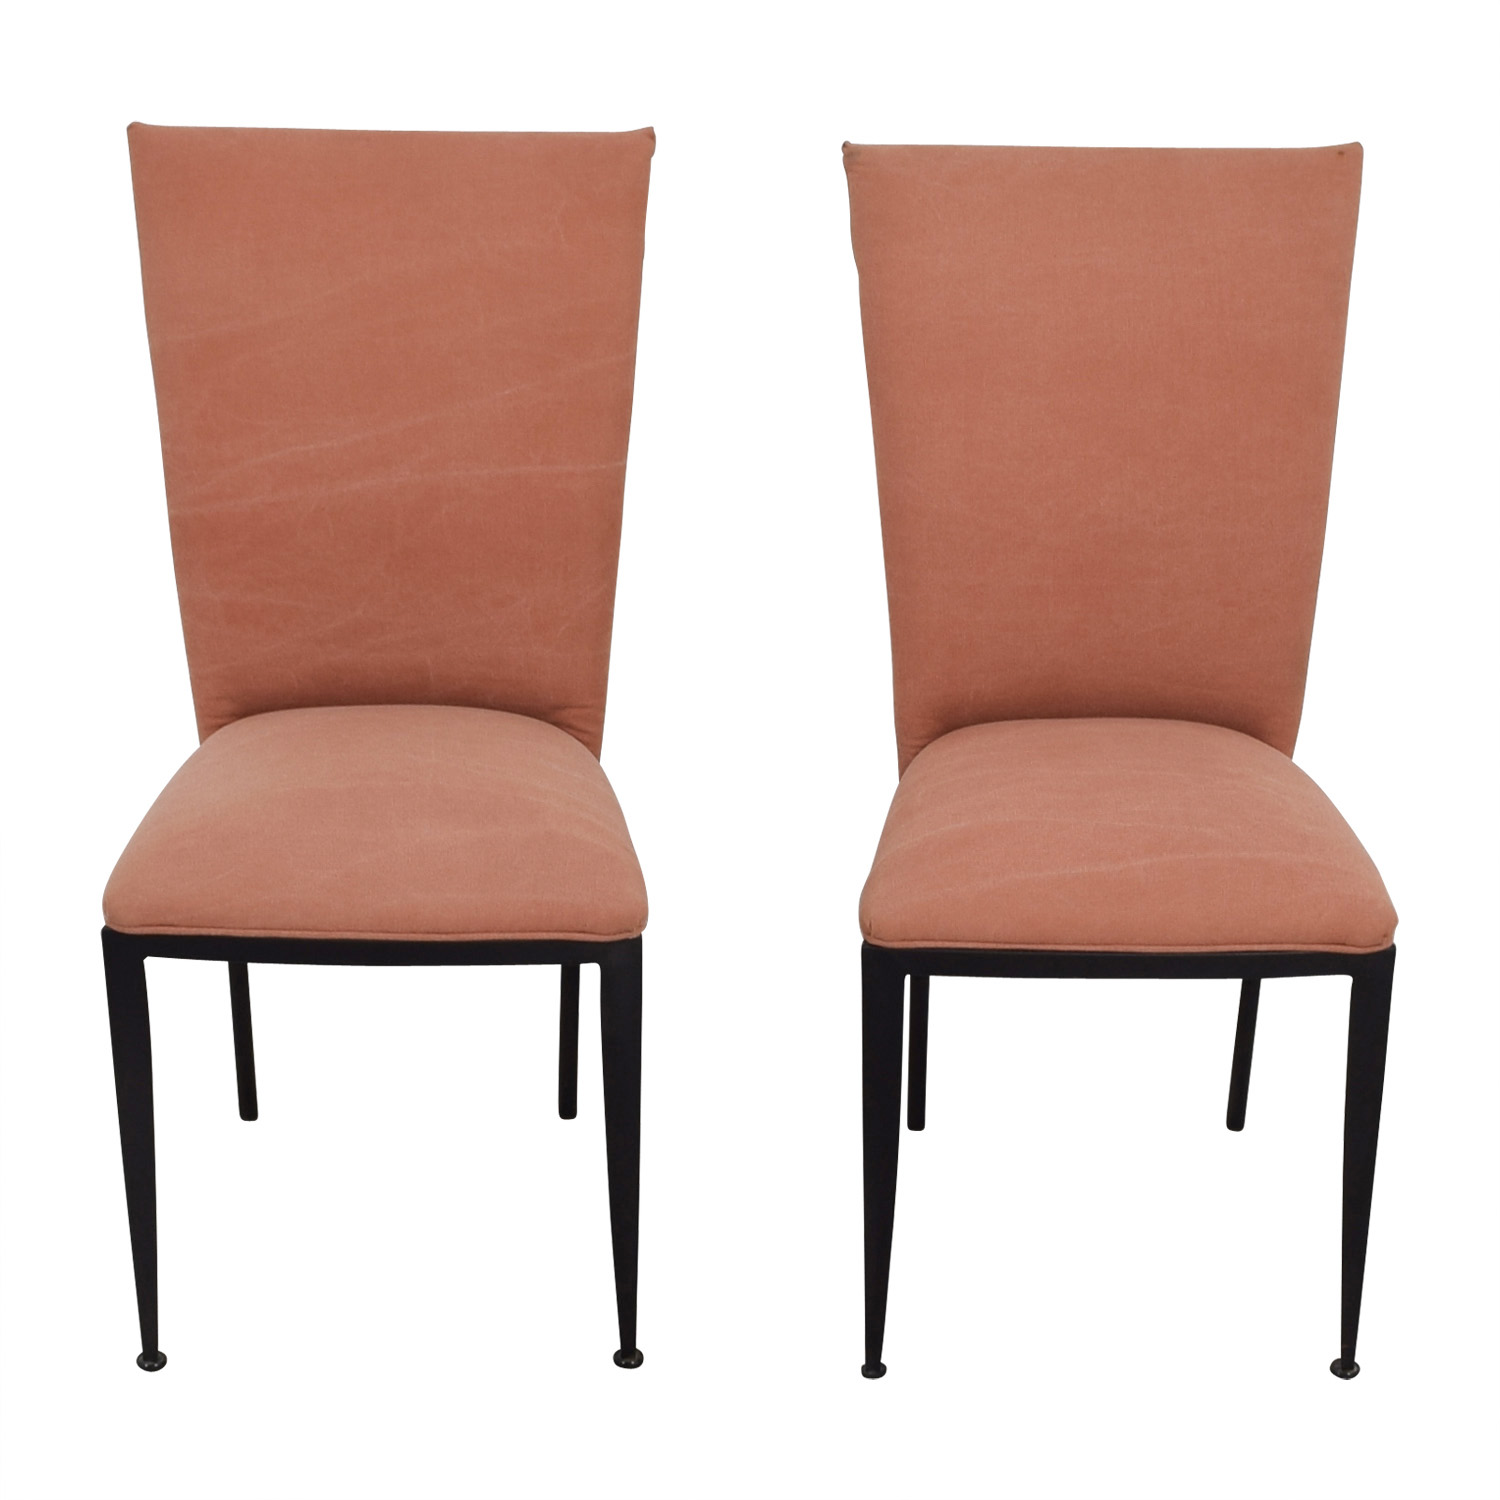 dining chairs at marshalls diy classroom chair covers 77 off marshall fields pink upholstered